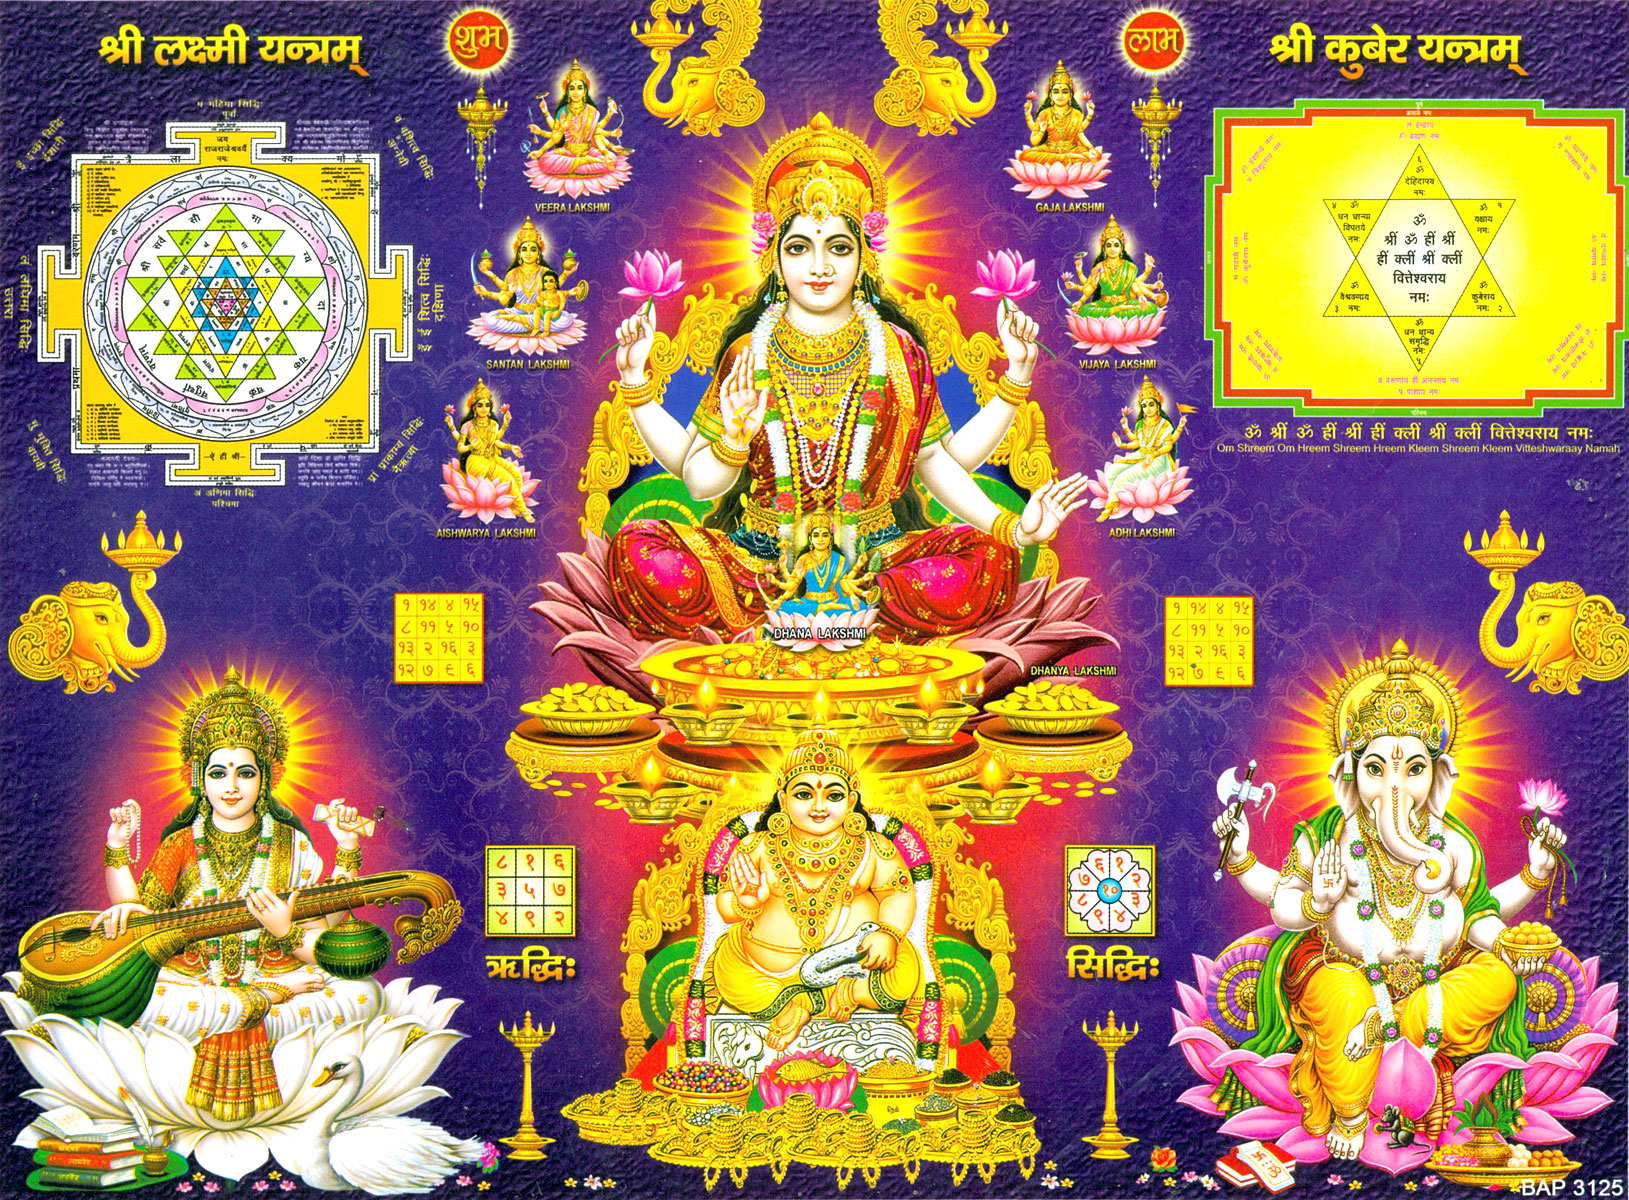 Laxmi Kuber Yantra Wallpaper HD Free Download